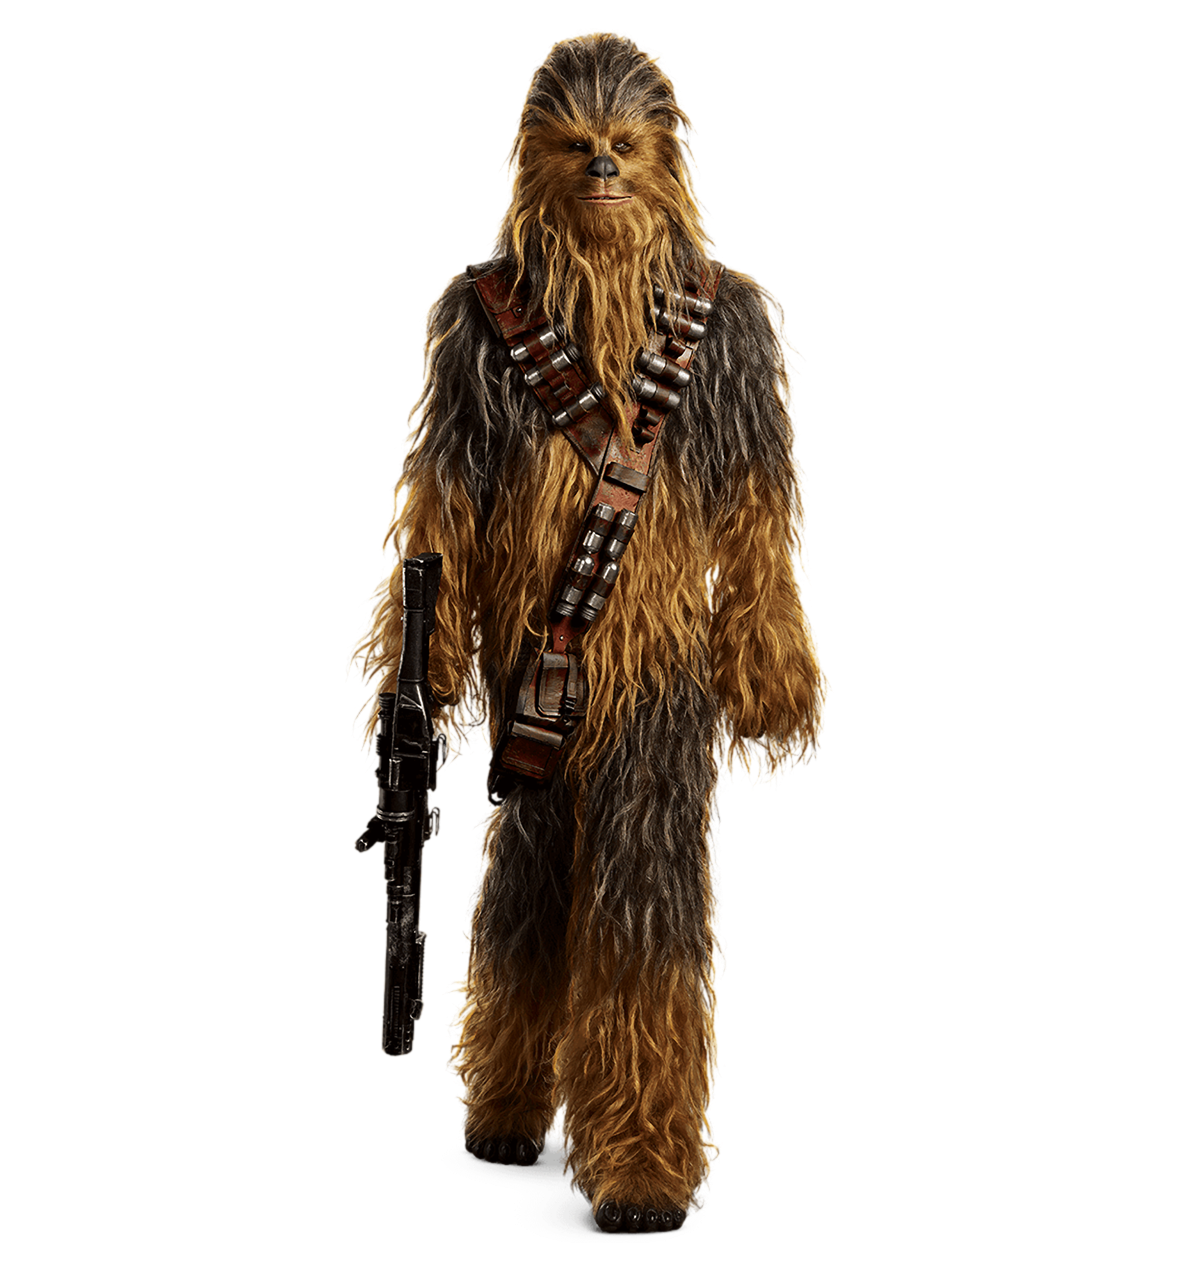 freeuse Chewie solo a star. Chewbacca transparent background